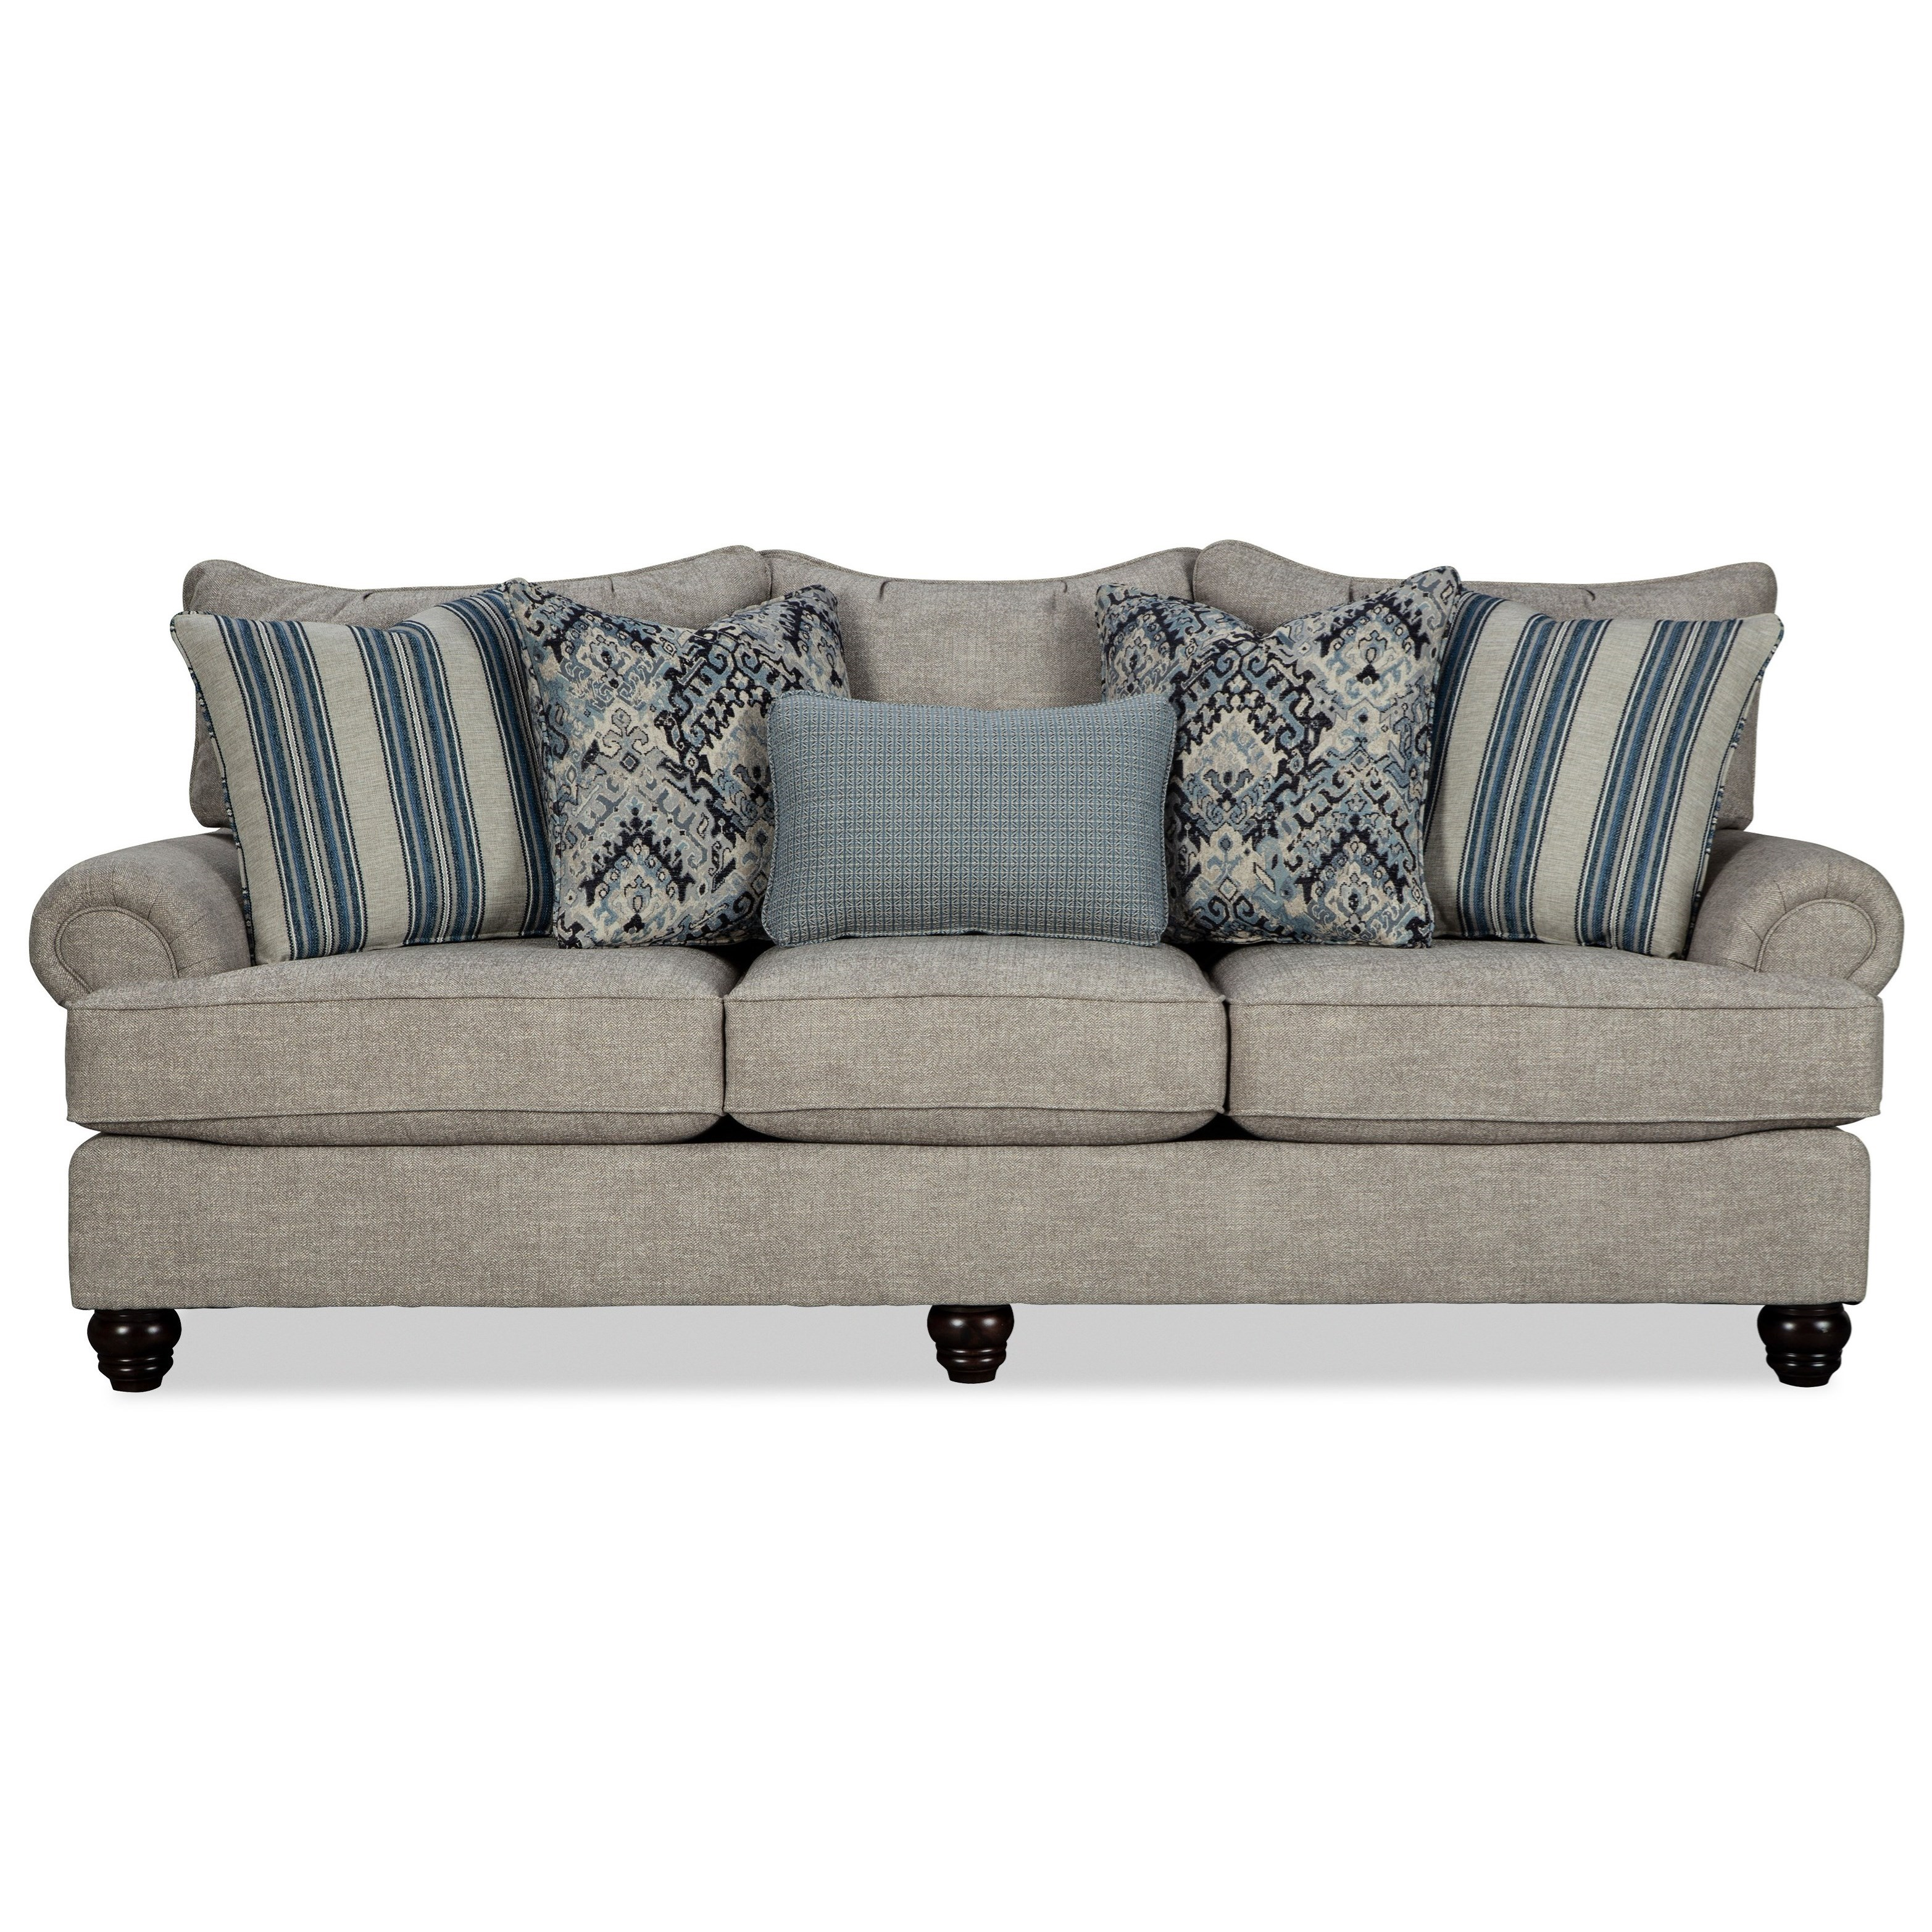 7970 Sofa by Craftmaster at Suburban Furniture